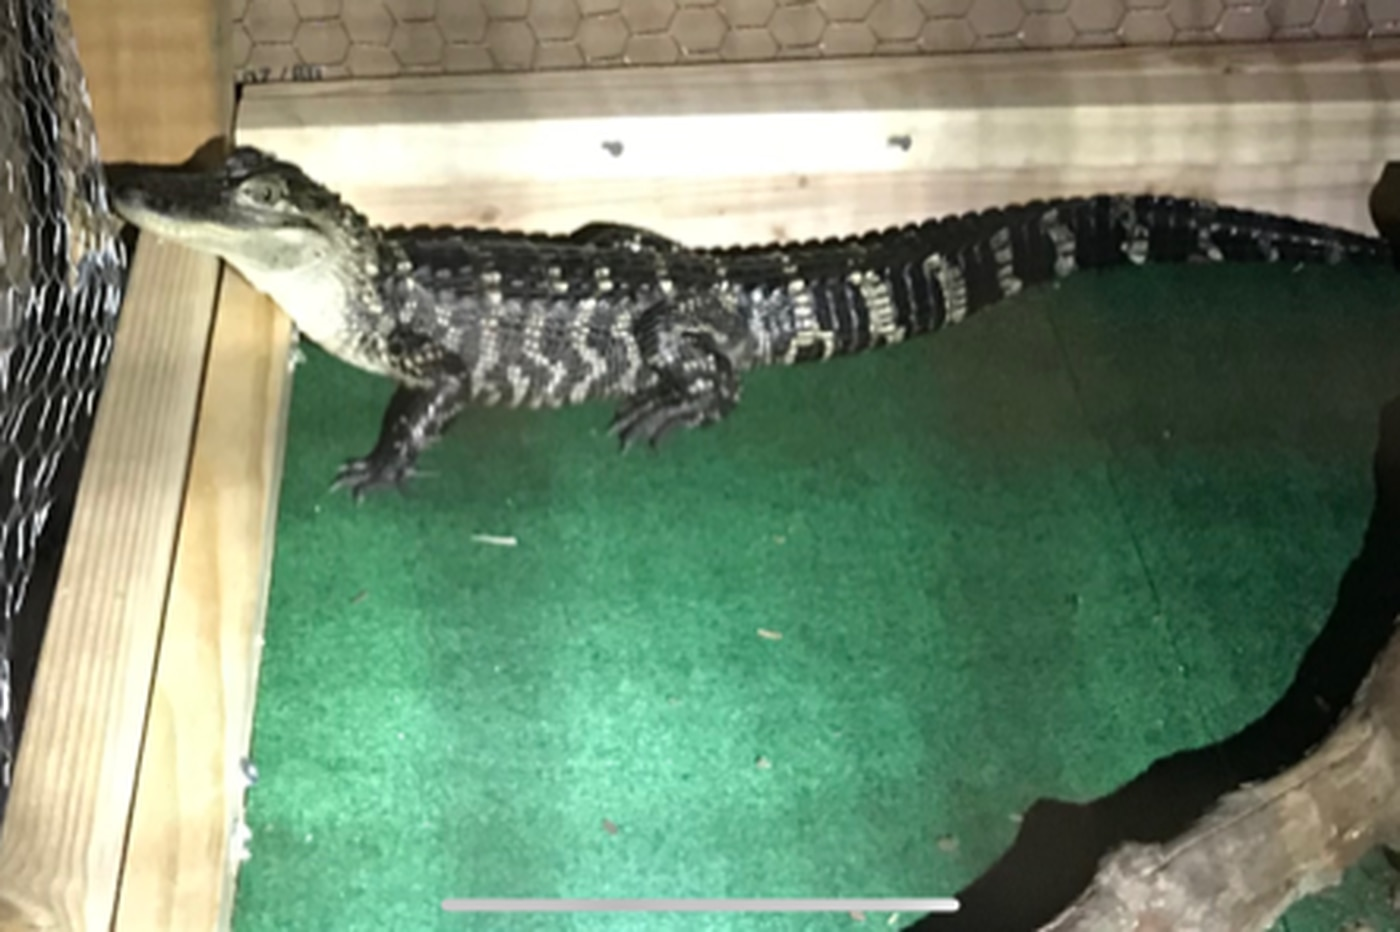 Three men and an alligator snagged in drug bust, Chesco DA says